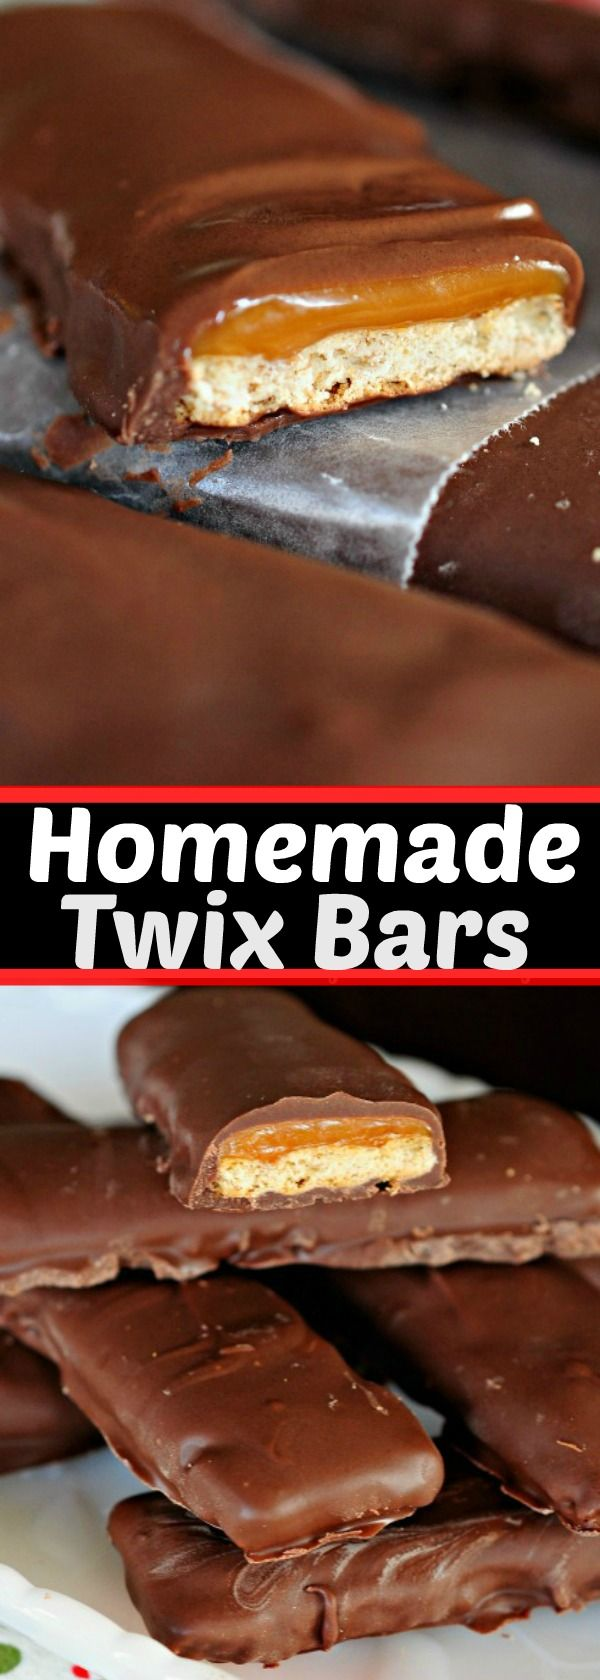 Easy Homemade TWIX Bars! Just 4 simple ingredients is all it takes to make these homemade candy bars in minutes!